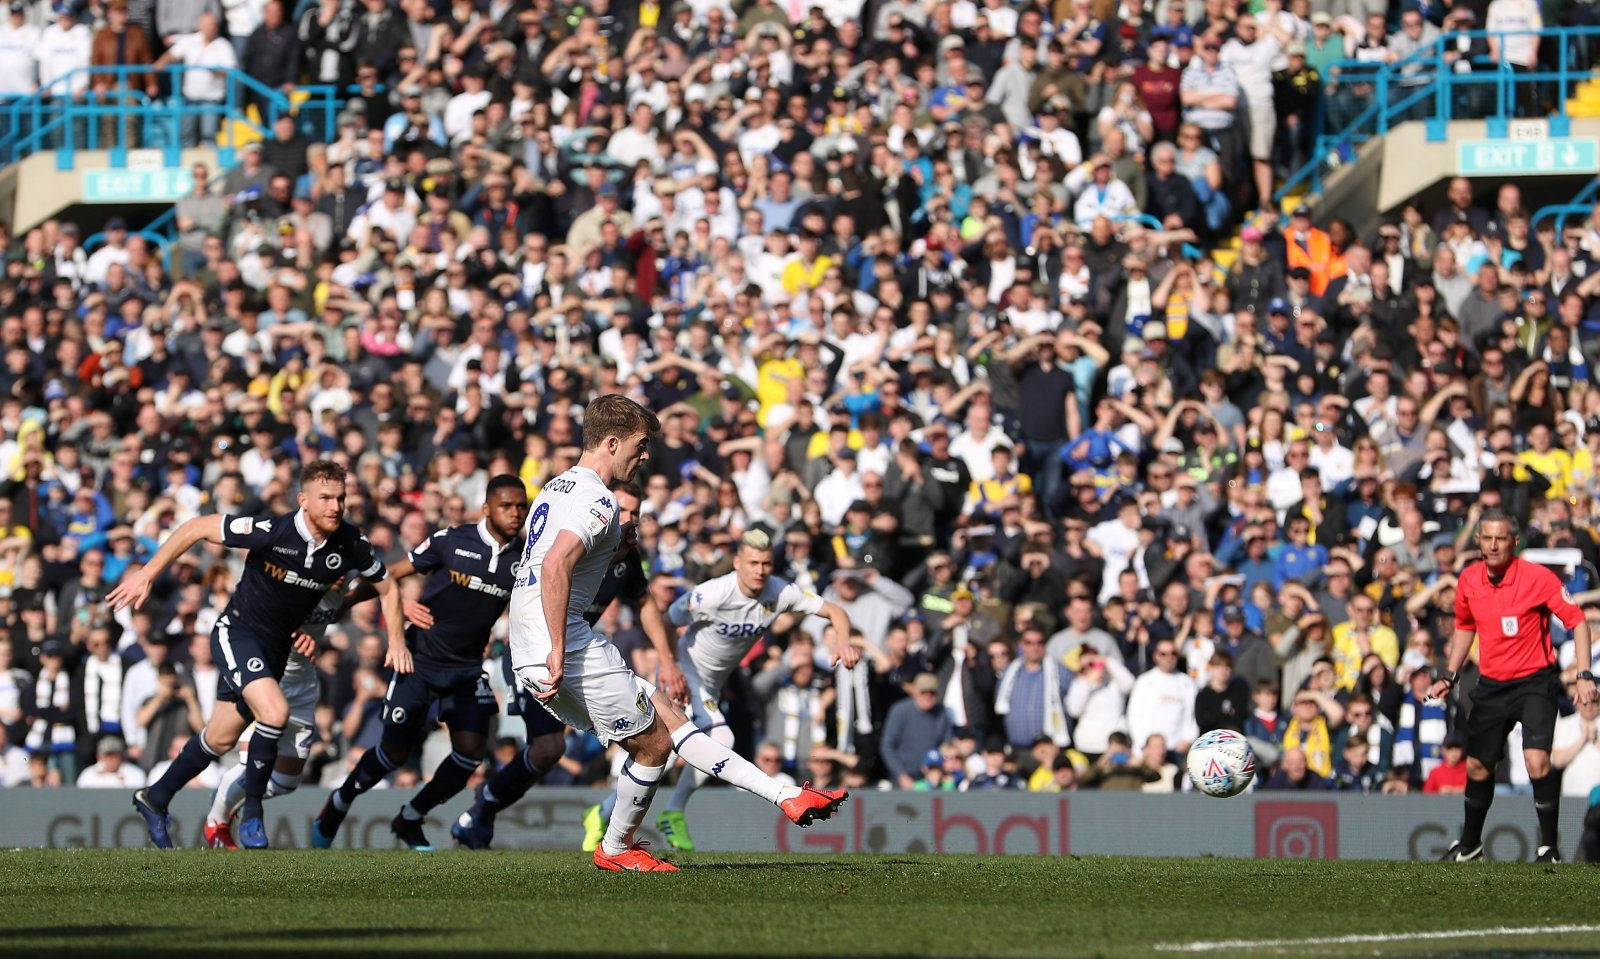 Leeds United: Bamford can go from zero to hero in one game